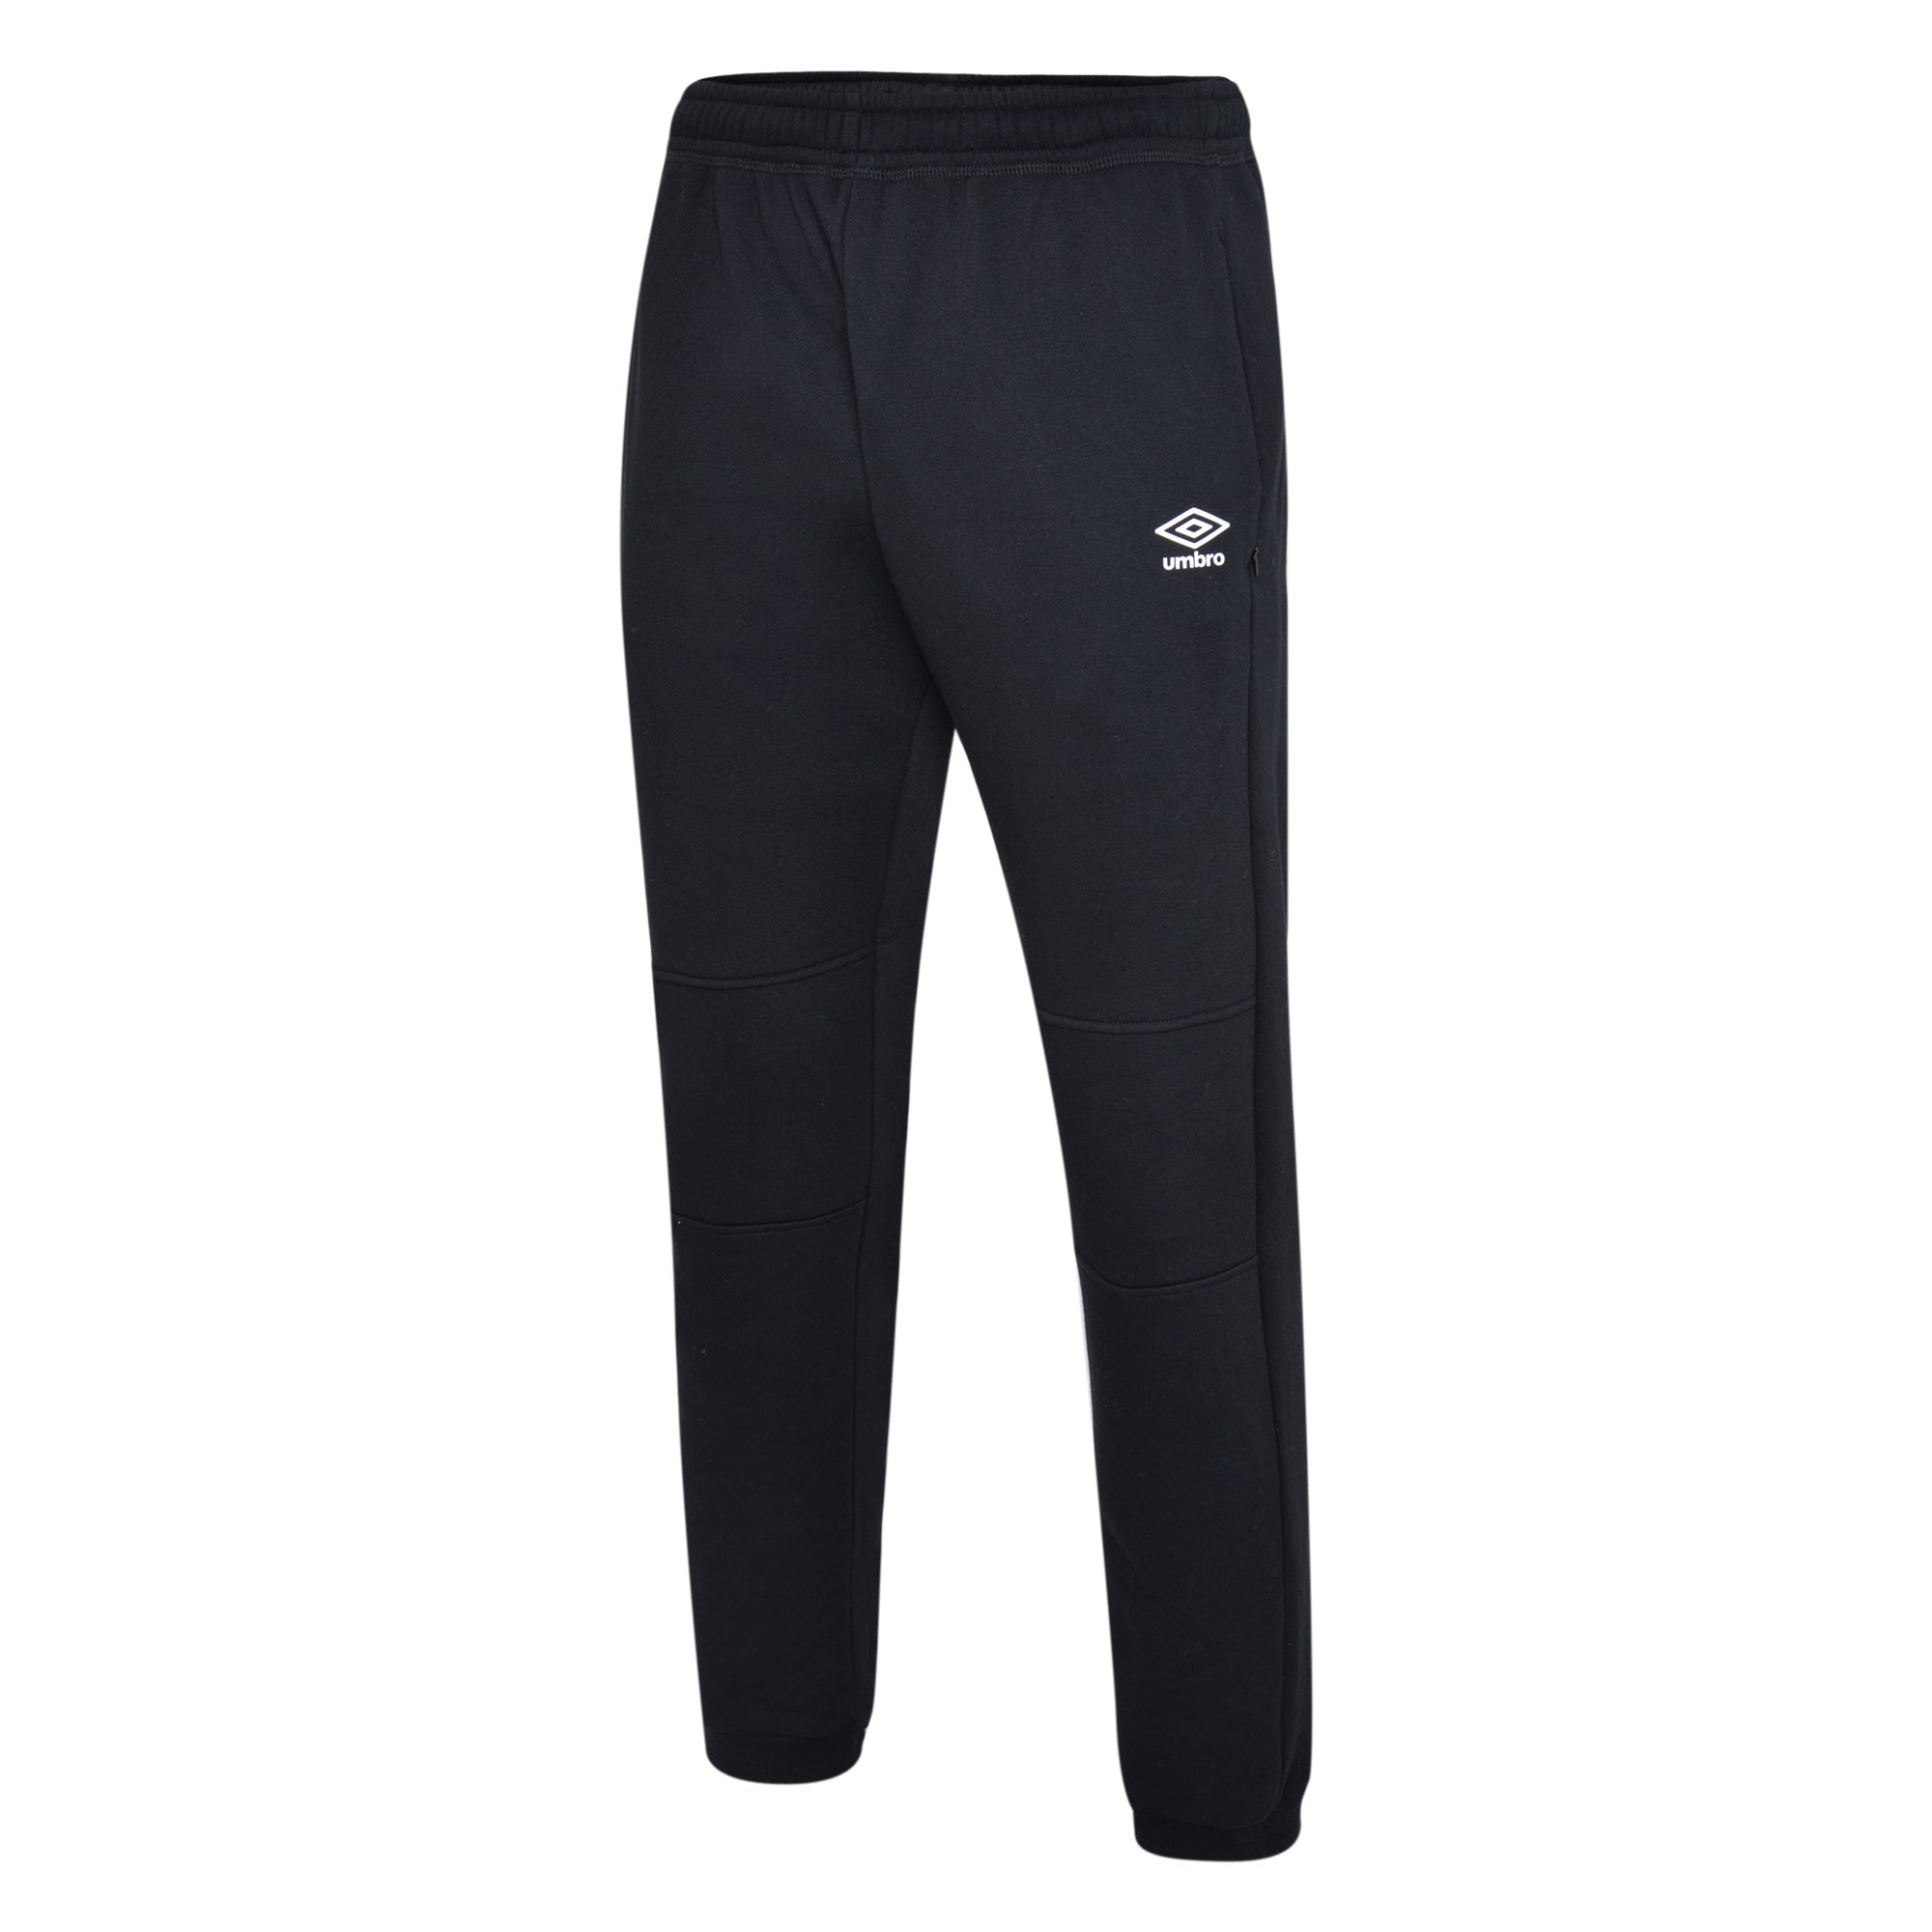 Umbro Club Leisure Jogpants - Black/White